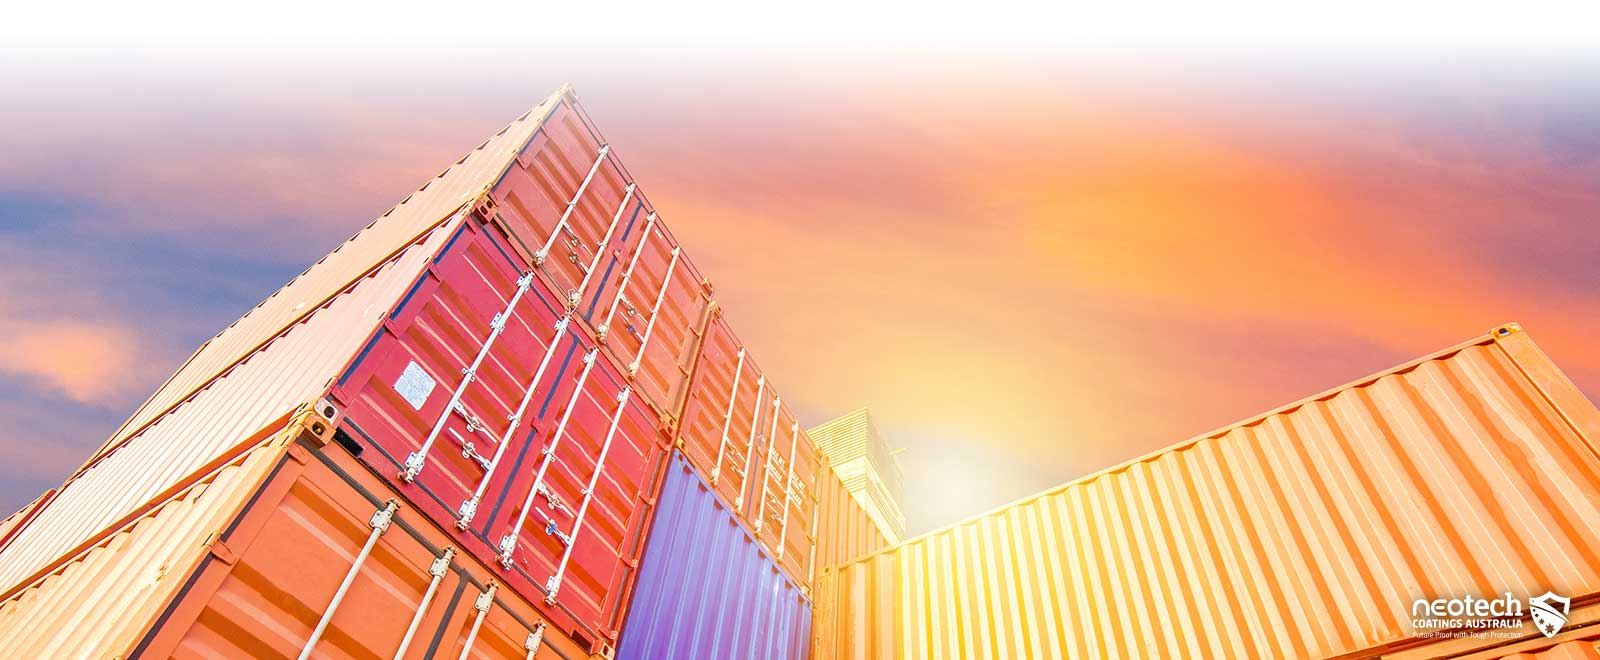 Shipping Containers Heat Block Coatings NEOtech Coatings - Super Therm